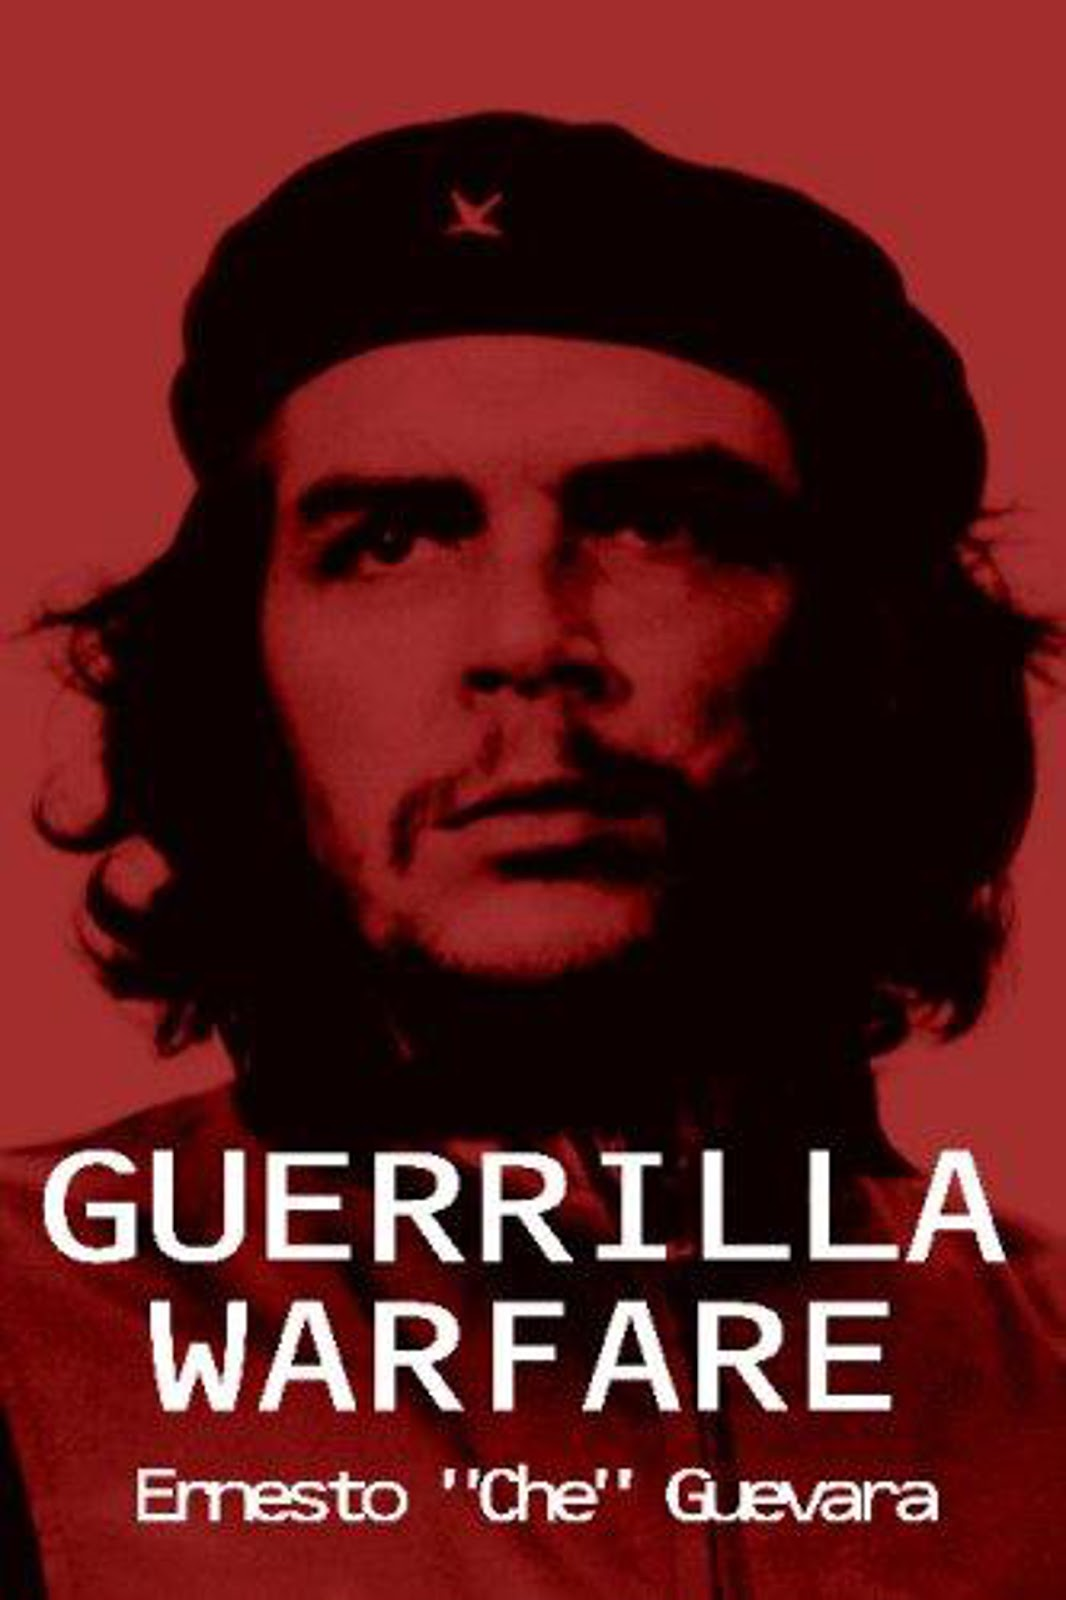 Guerrilla Warfare by Marxist